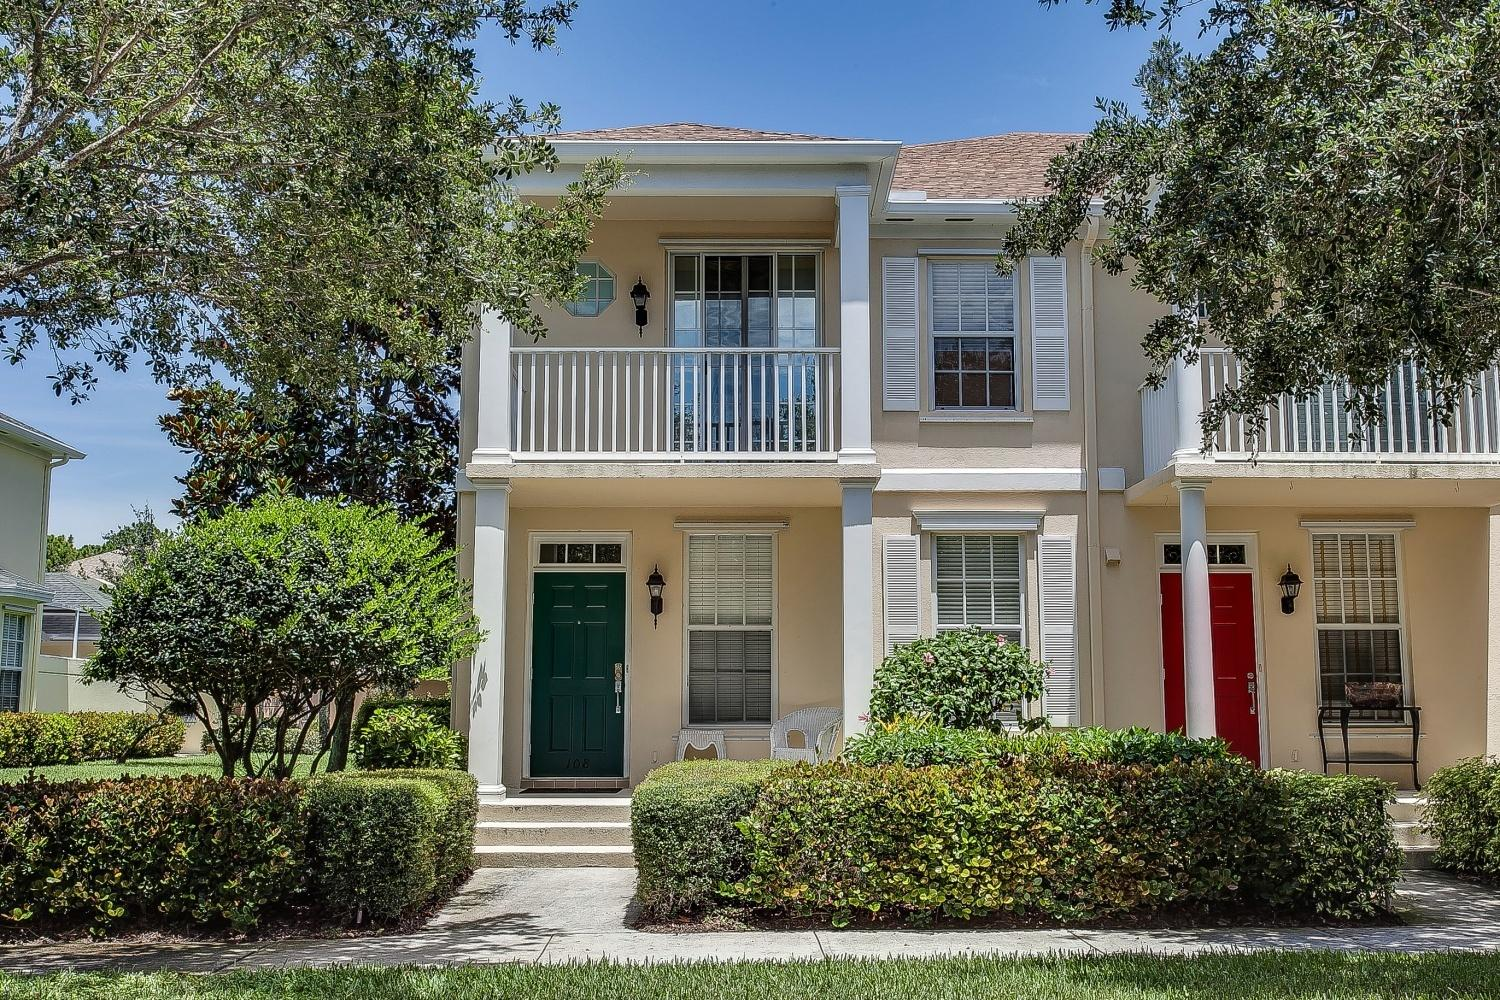 New Home for sale at 108 Waterford Drive in Jupiter